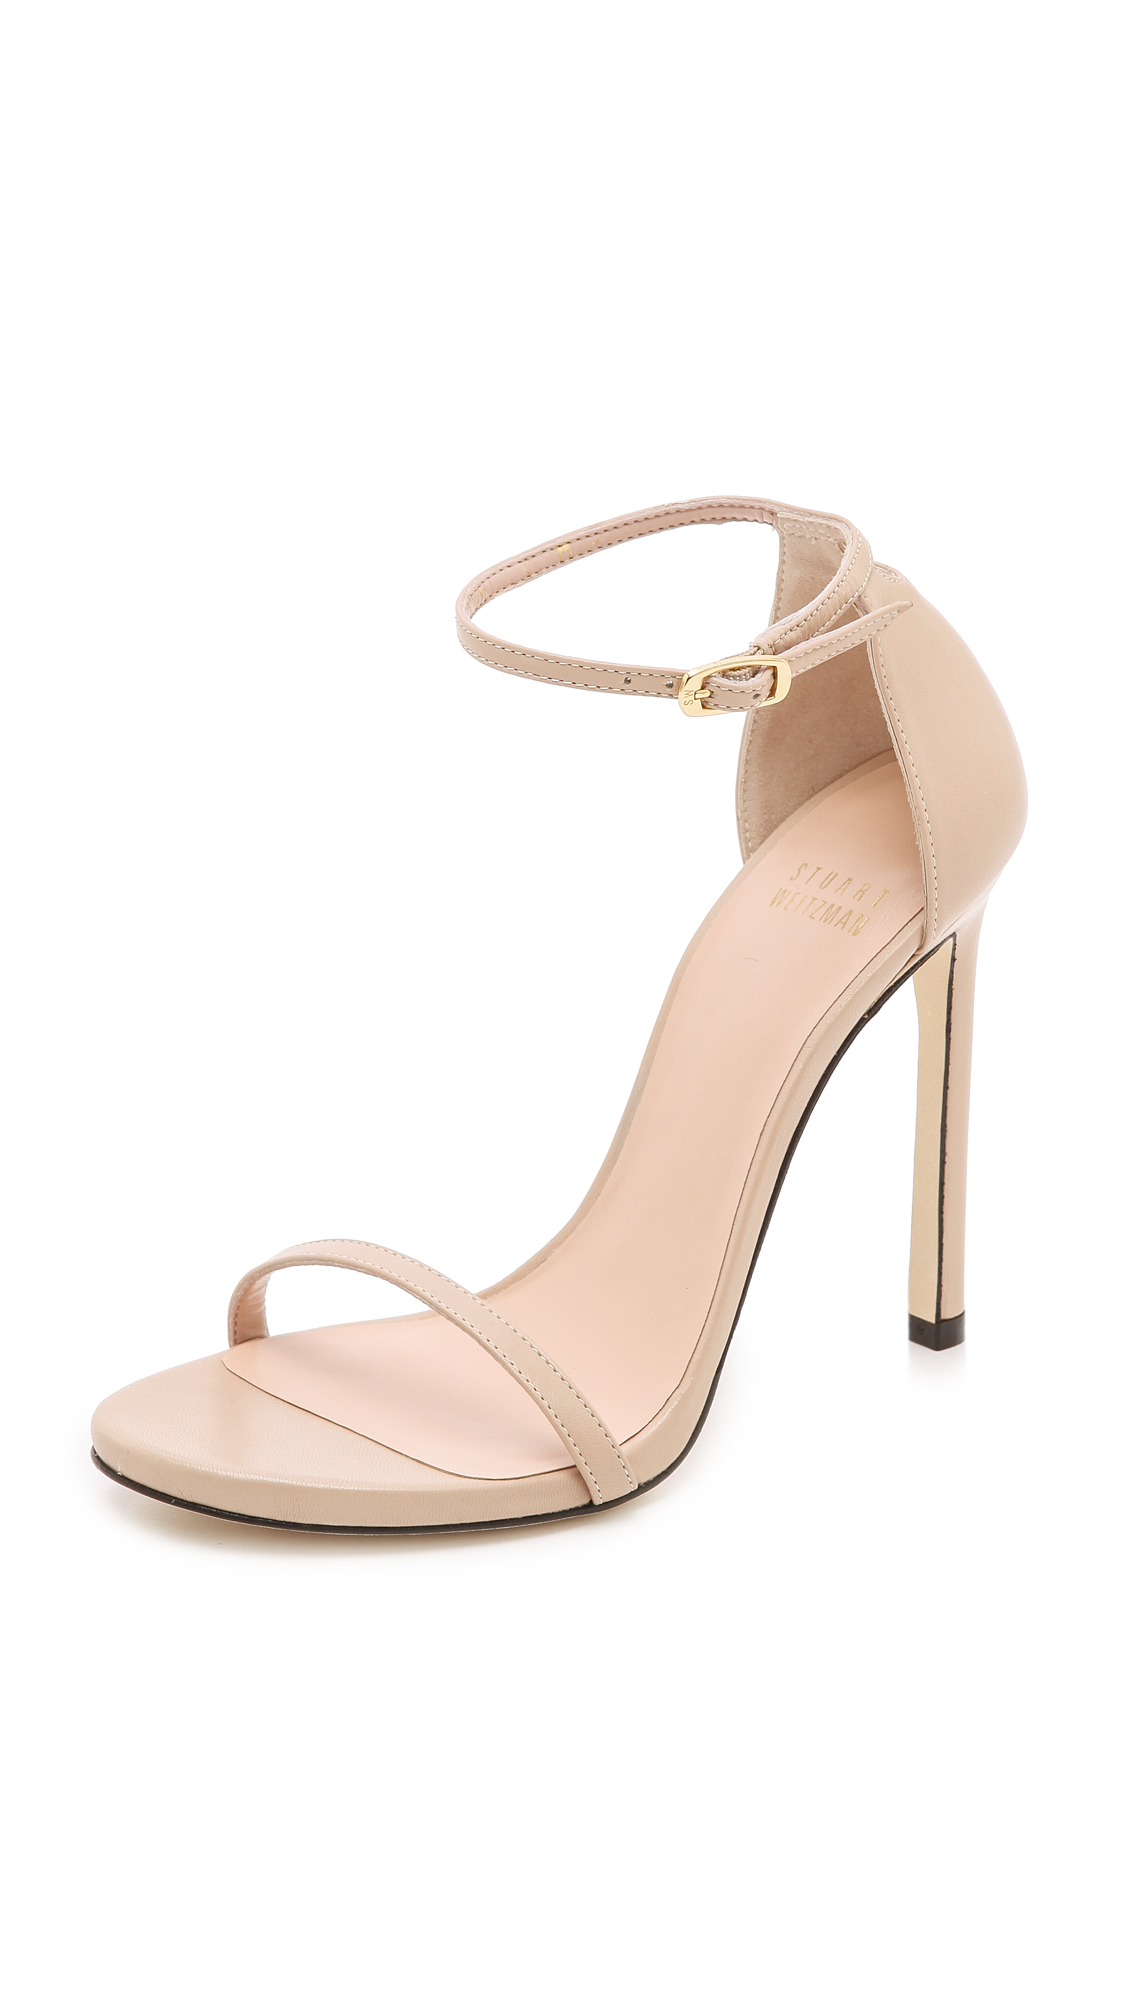 Stuart Weitzman Nudist 110mm Sandals - Adobe